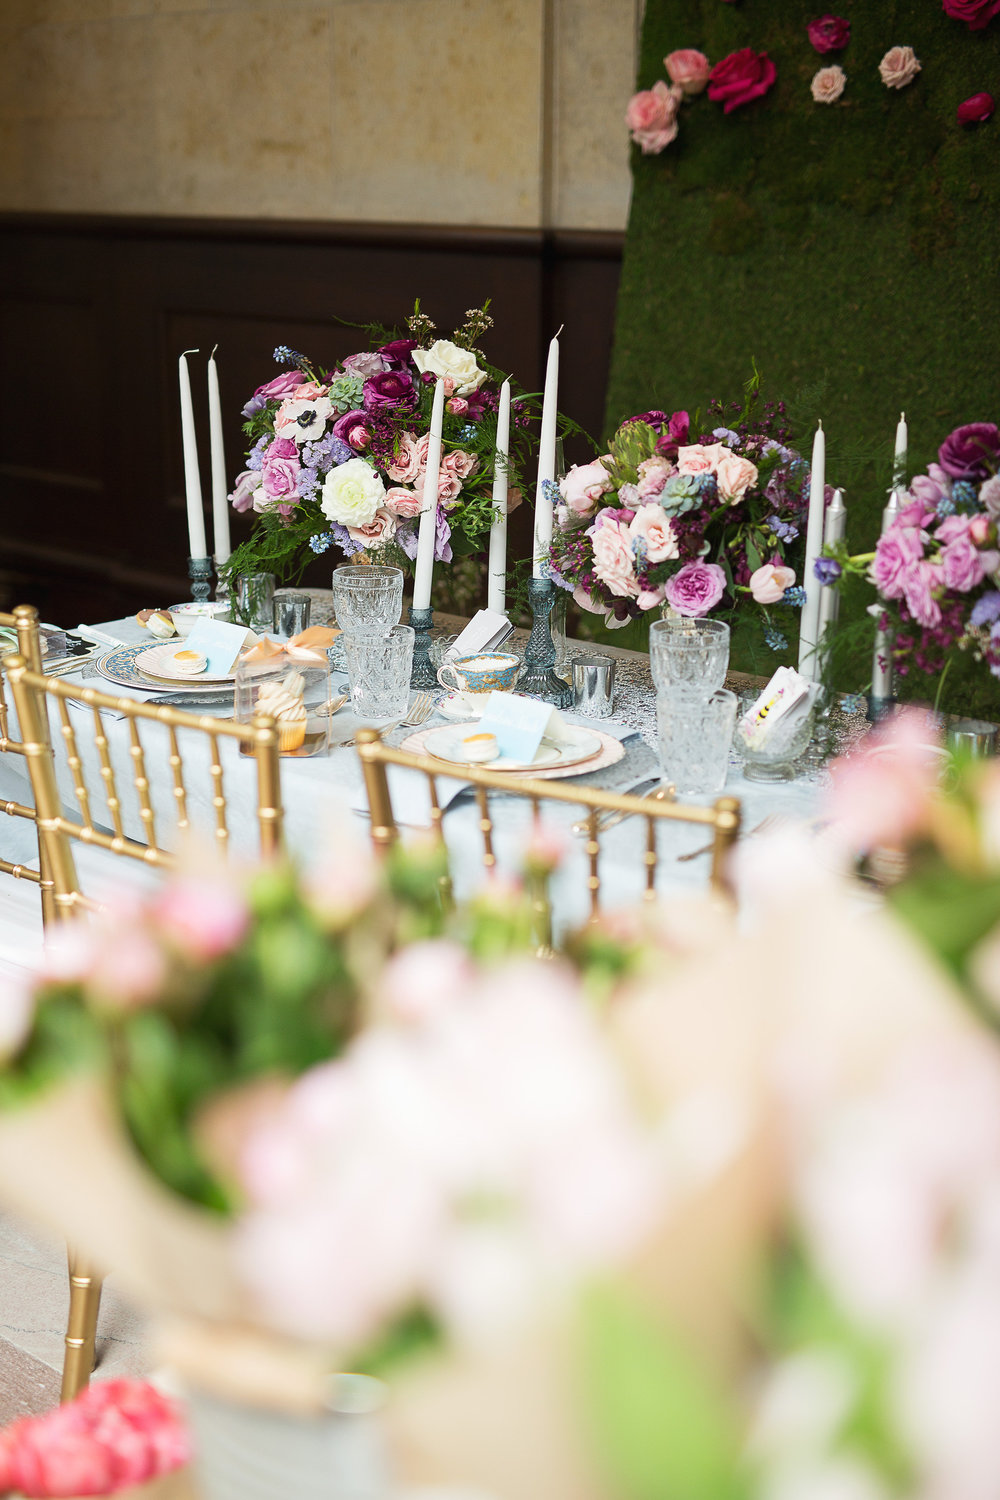 Phoebe Lo Events - Toronto Event Planner and Floral Designer 014.jpg